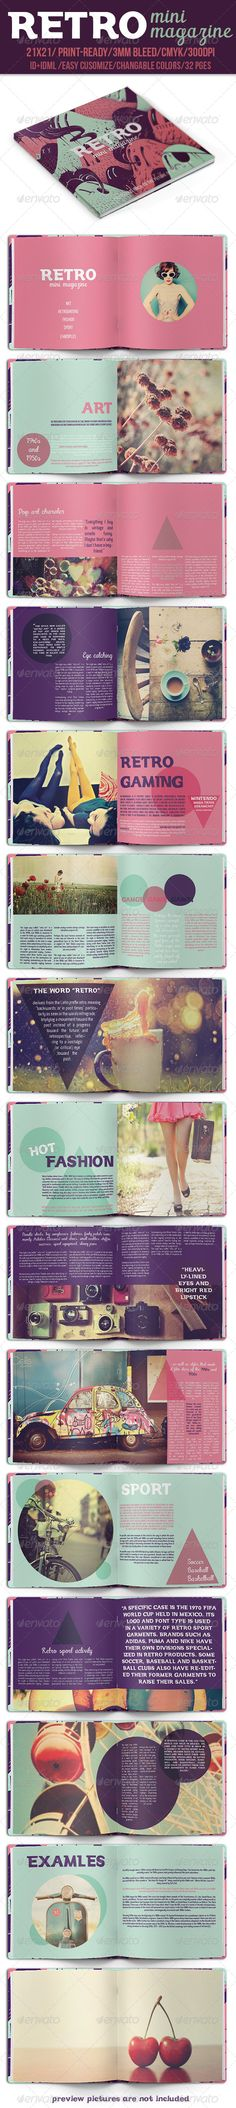 Retro Mini Magazine http://graphicriver.net/item/retro-mini-magazine/8240804?ref=damiamio In-design CS6 + Idml CS5 or lower Cool Retro Mini Magazine is magazine that provides your opportunity to use this layout for any purpose that you like. Easy to customize, just drop in your own text and pictures and you are ready to go. You can use this magazine for business, travel, wedding, car, beauty, art or any other category that you like.